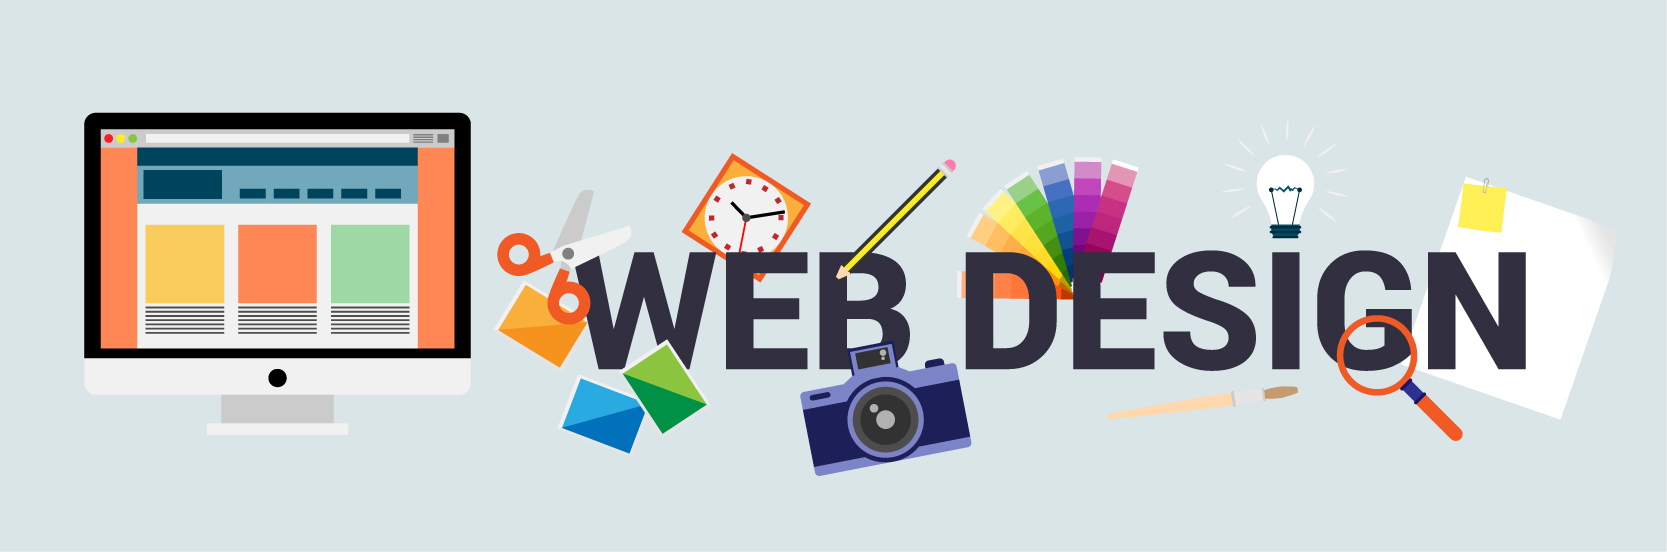 5 Most Popular Web Design To Build Your Brand